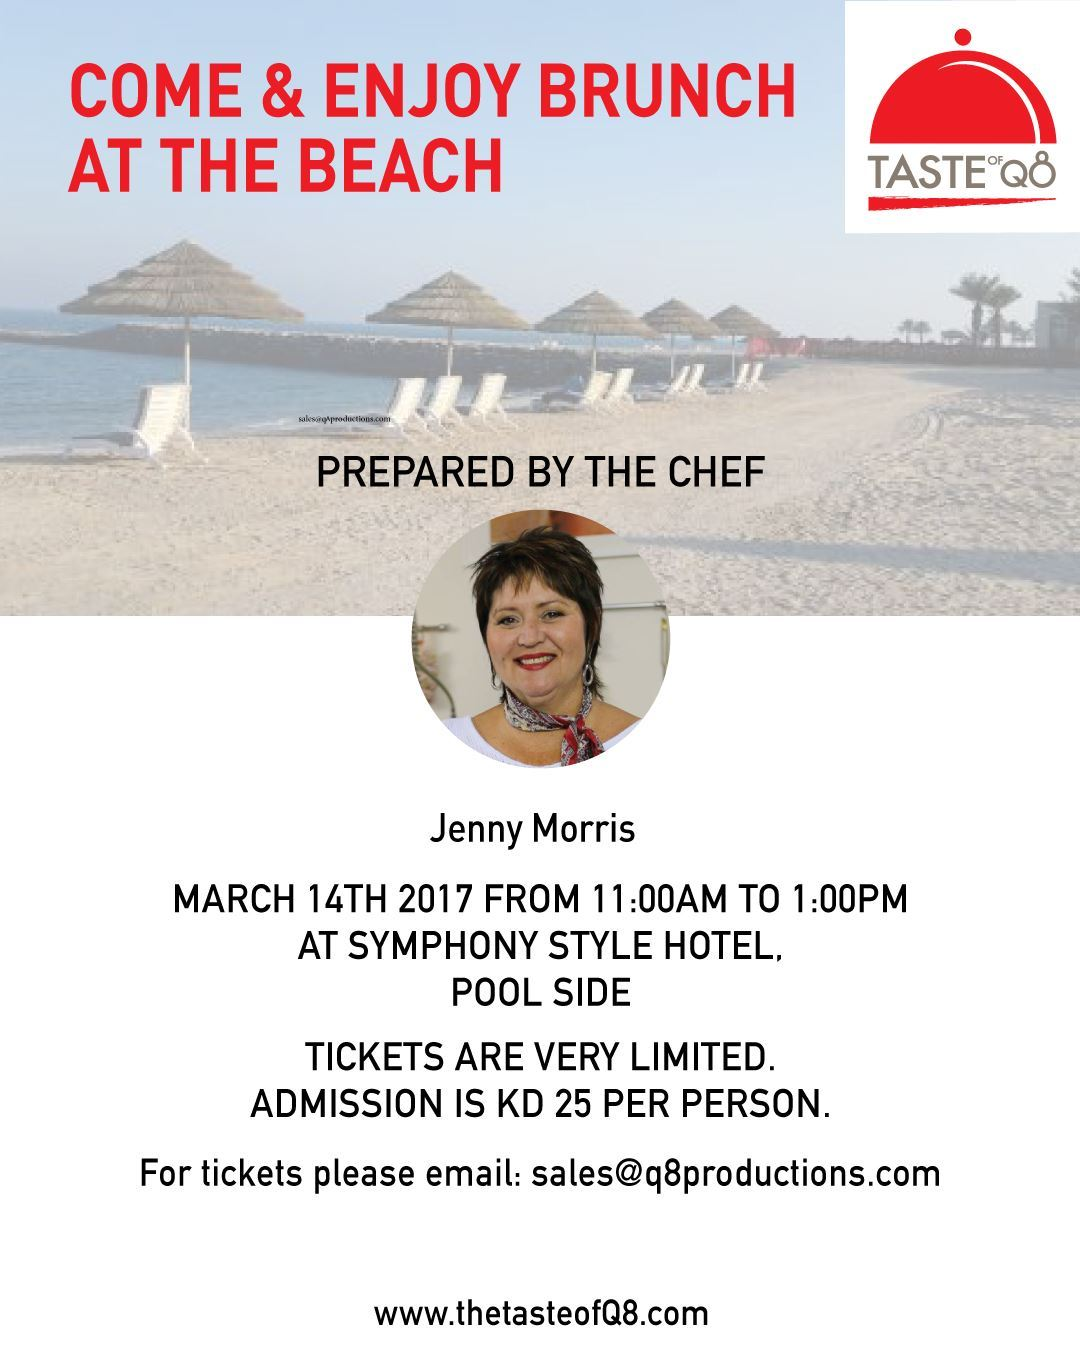 Come & Enjoy Brunch at the Beach - by Chef Jenny Morris